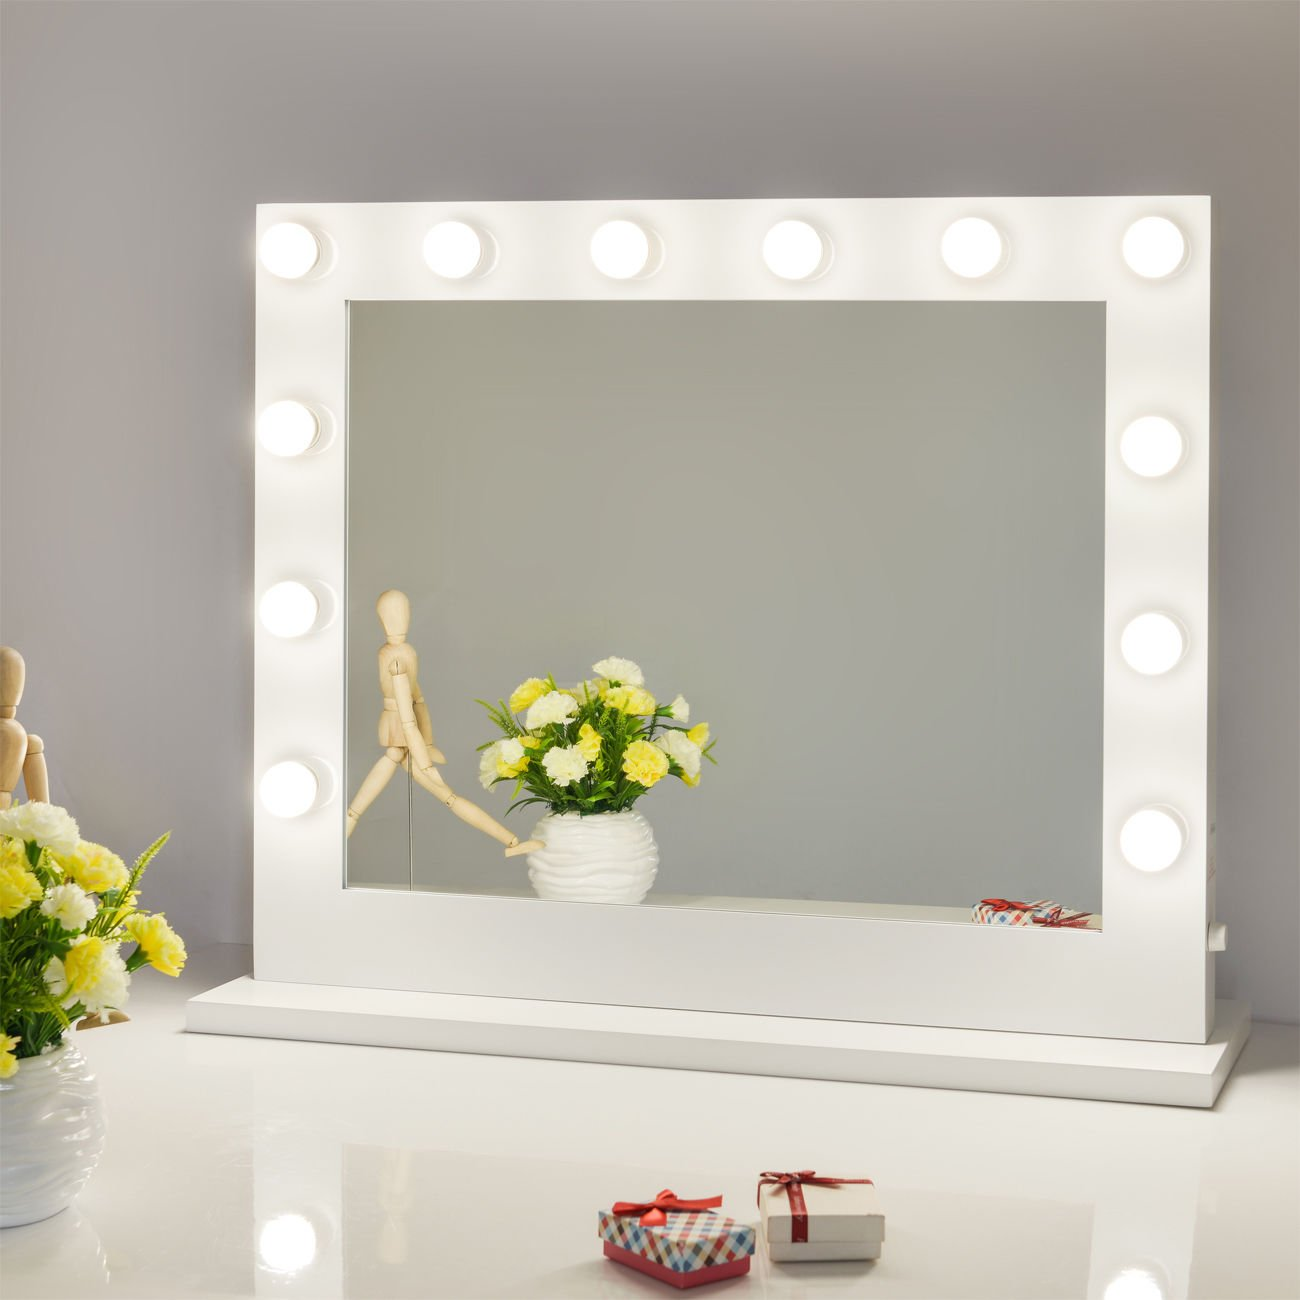 Chende vanity mirror with light hollywood makeup mirror wall mounted chende vanity mirror with light hollywood makeup mirror wall mounted lighted mirror amazon home kitchen mozeypictures